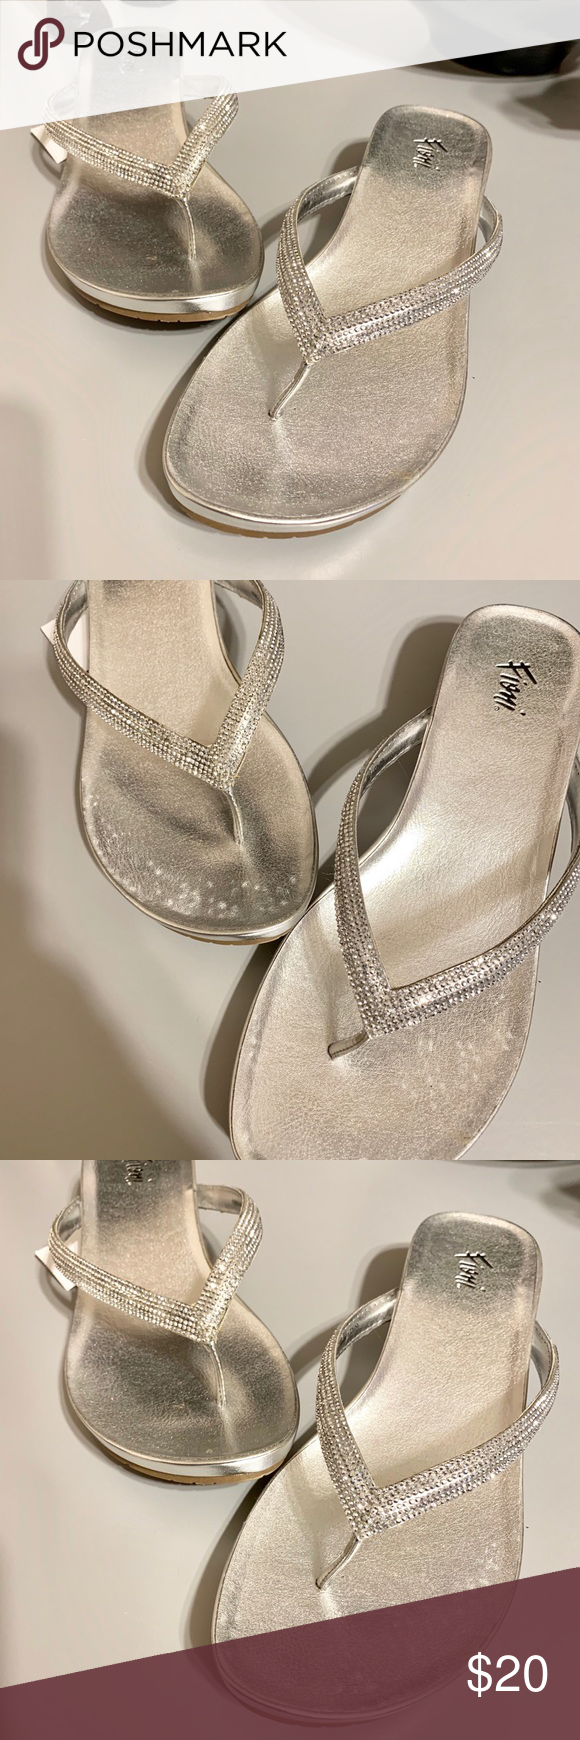 Fioni Silver Blingy Low Wedge Sandals This is a brand new with tags pair of Blingy silver sandals with a low wedge in a size 9 1/2. The design of the shoe creates a slight rocking motion as you walk. It has clear stones covering the top. Fioni Shoes Sandals #lowwedgesandals Fioni Silver Blingy Low Wedge Sandals This is a brand new with tags pair of Blingy silver sandals with a low wedge in a size 9 1/2. The design of the shoe creates a slight rocking motion as you walk. It has clear stones cover #lowwedgesandals